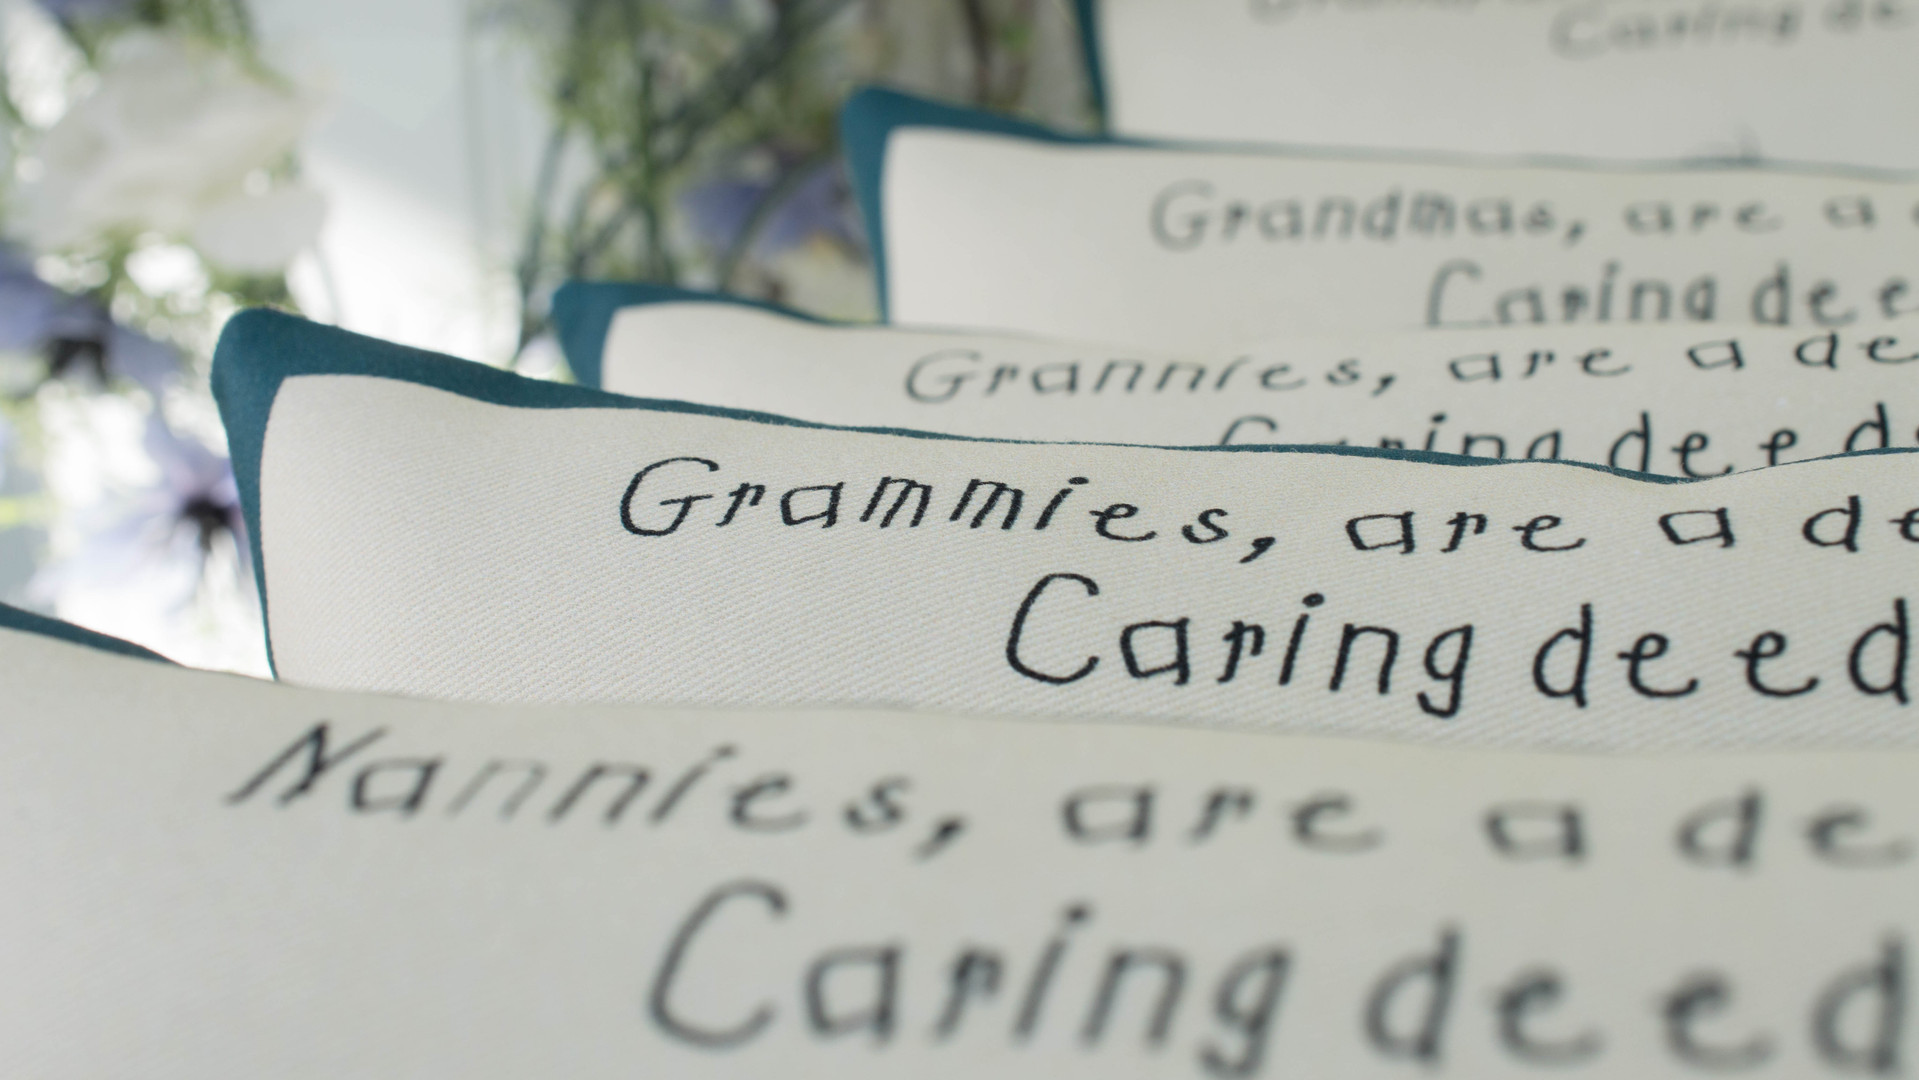 Nannies, Grannies and Grammies!